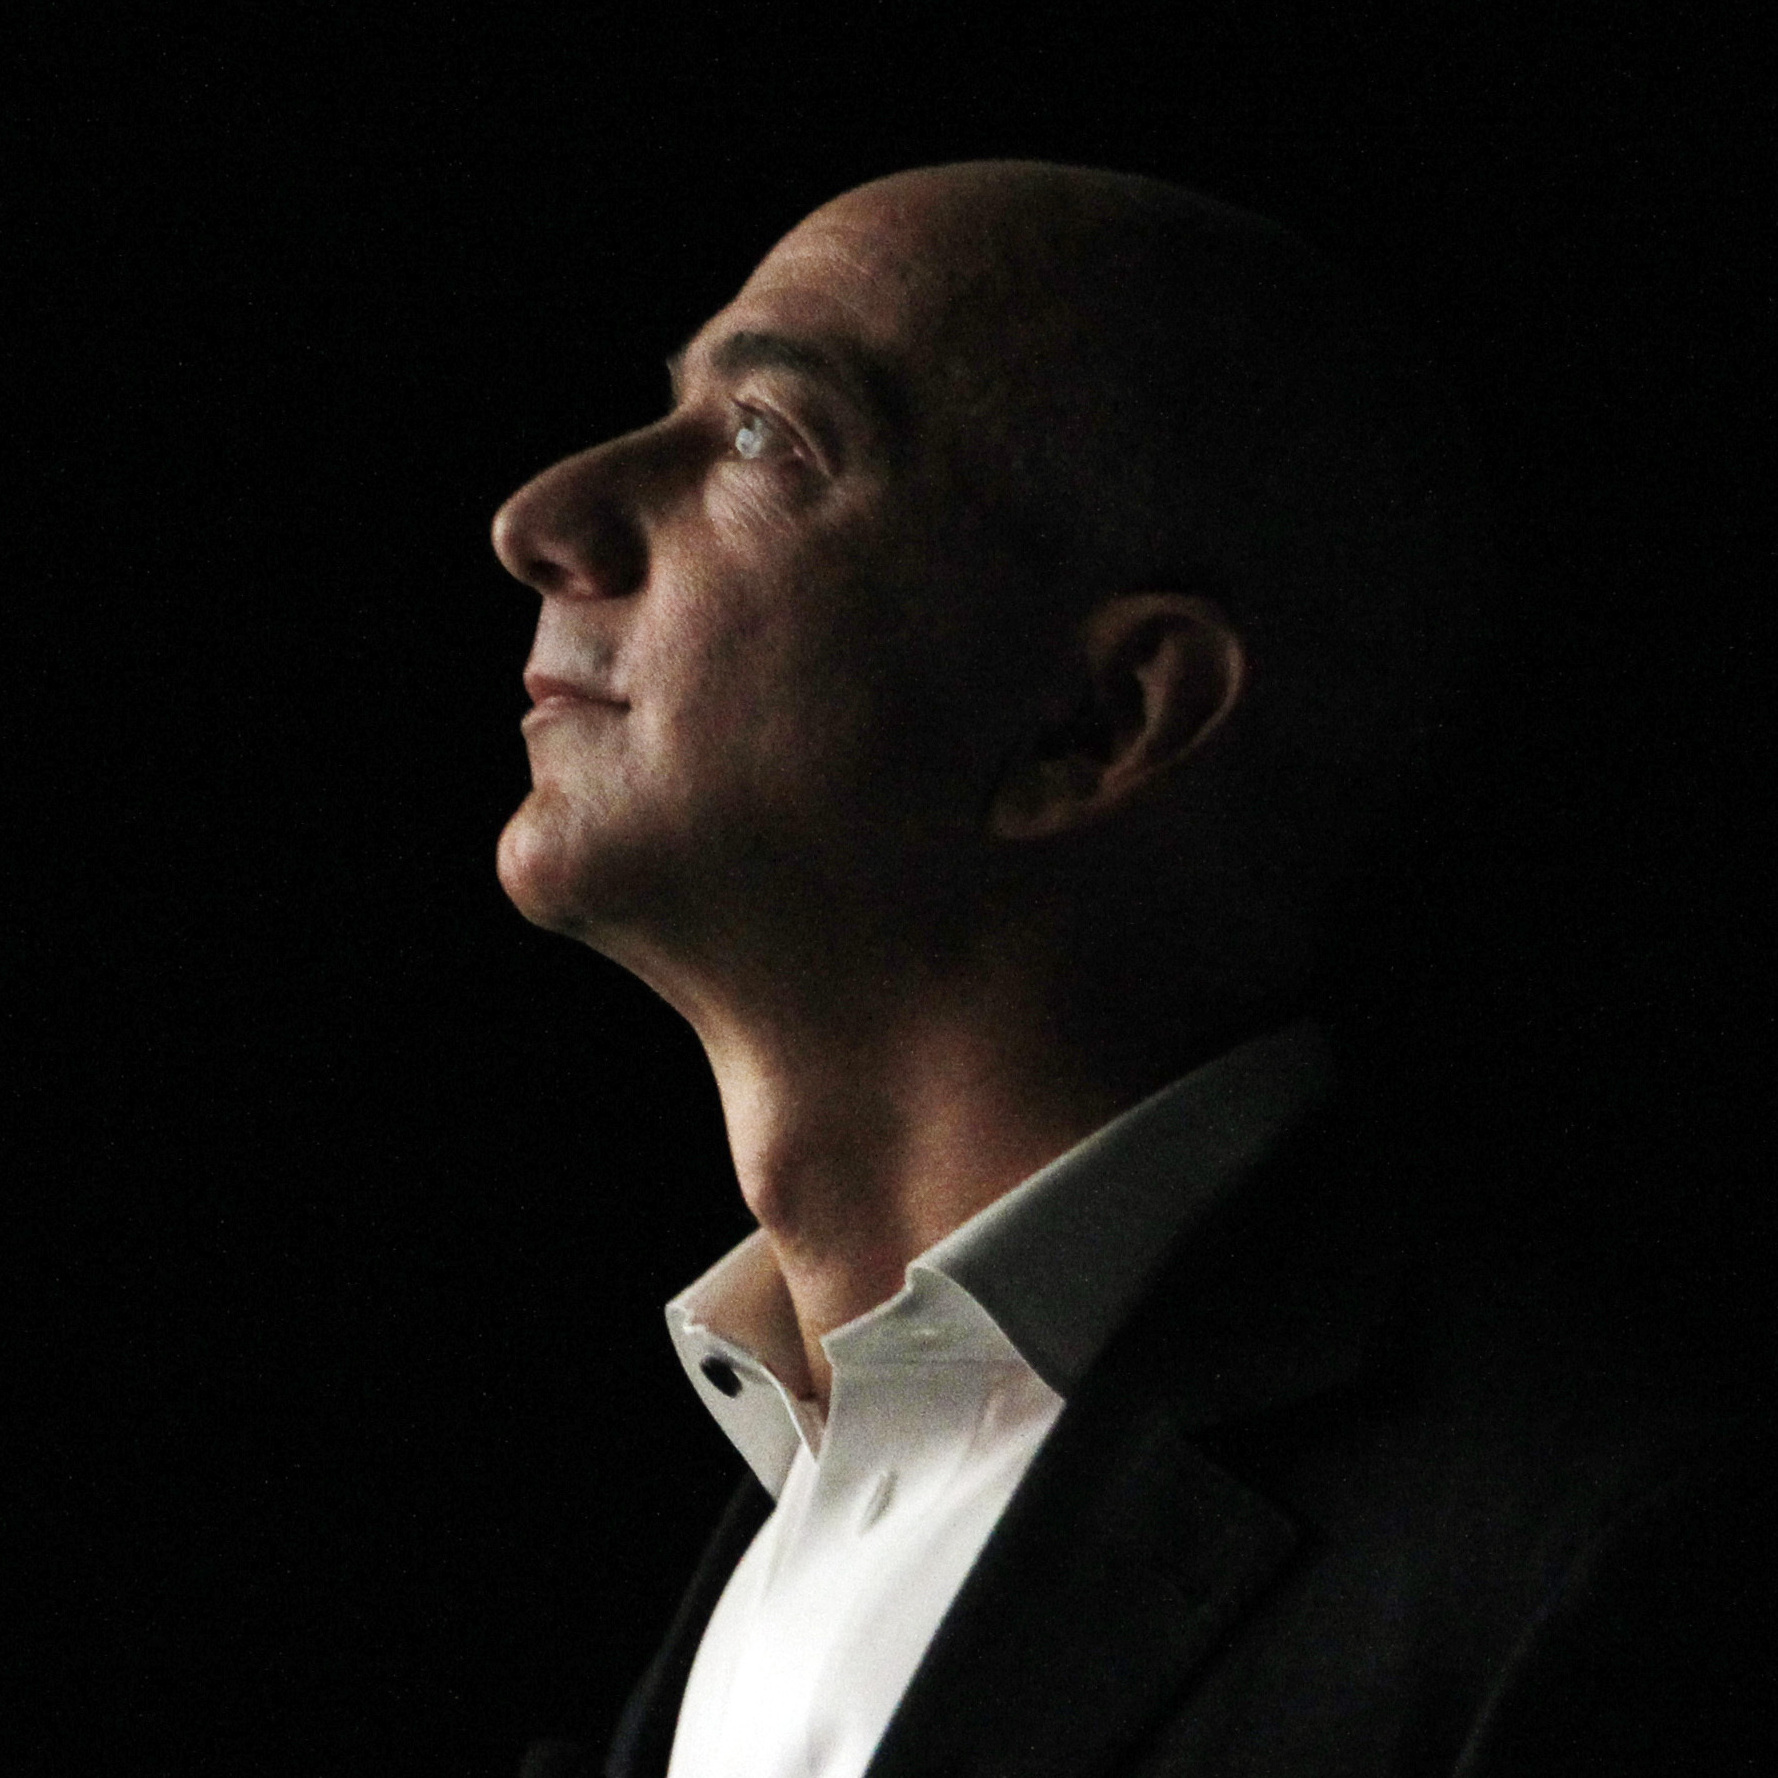 Jeff Bezos, CEO and founder of Amazon, is illuminated by a display screen at the introduction of the new Amazon Kindle Fire HD and Kindle Paperwhite.